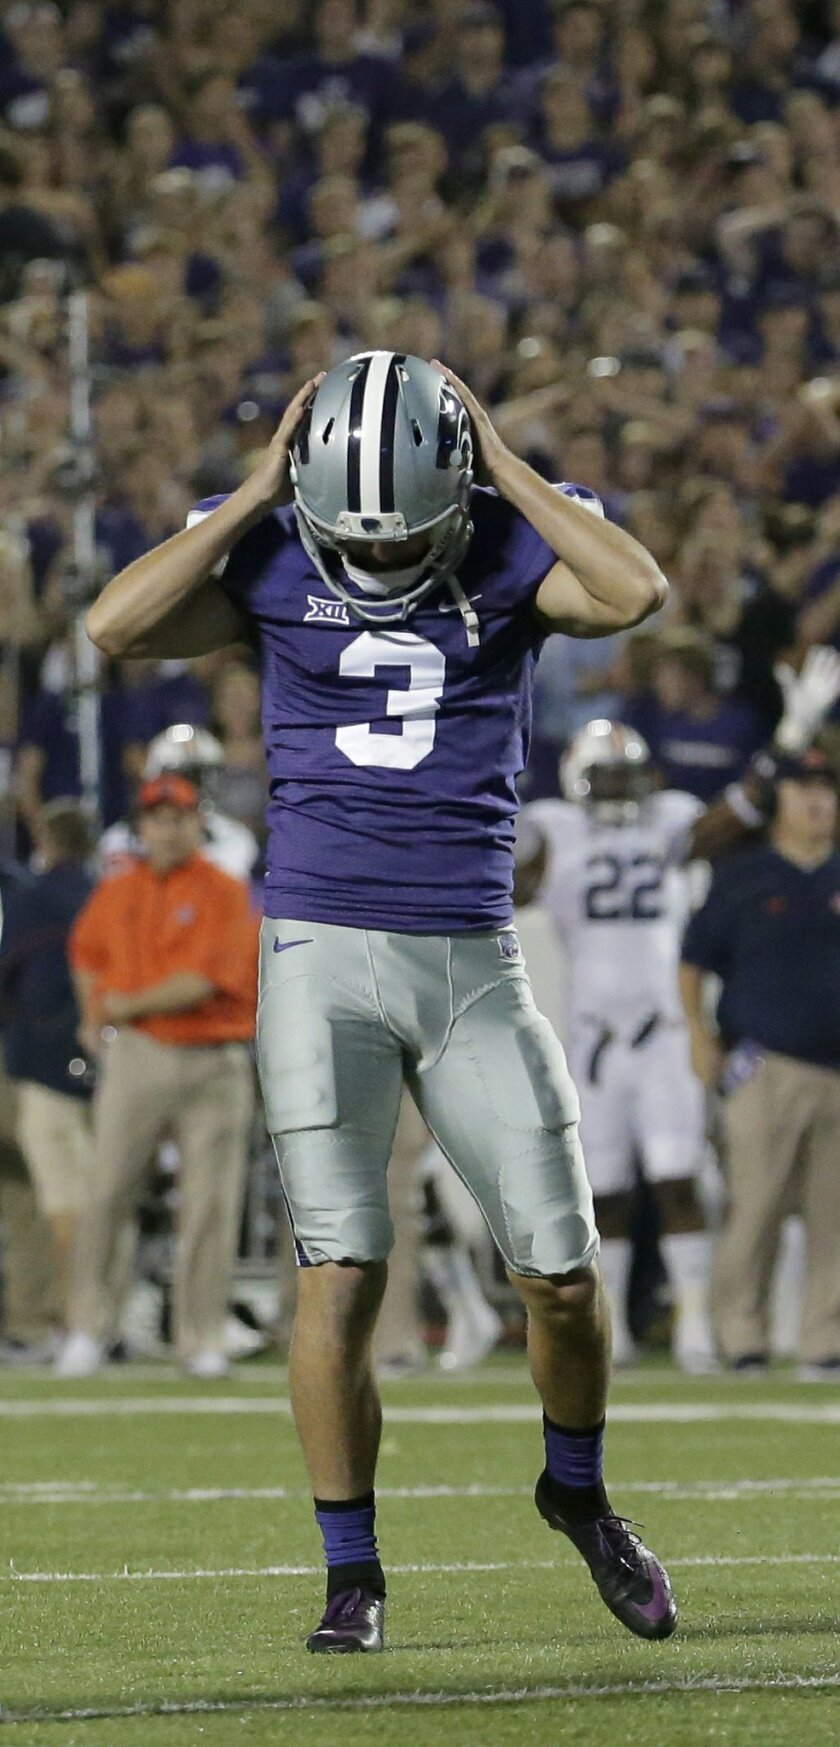 FILE - In this Sept. 18, 2014, file photo, Kansas State place kicker Jack Cantele (3) reacts after missing his third field goal of the game during the second half of an NCAA college football game against Auburn in Manhattan, Kan. In the year since the worst night of his football career, Cantele has learned perspective is everything when it comes to his story.(AP Photo/Charlie Riedel, File)